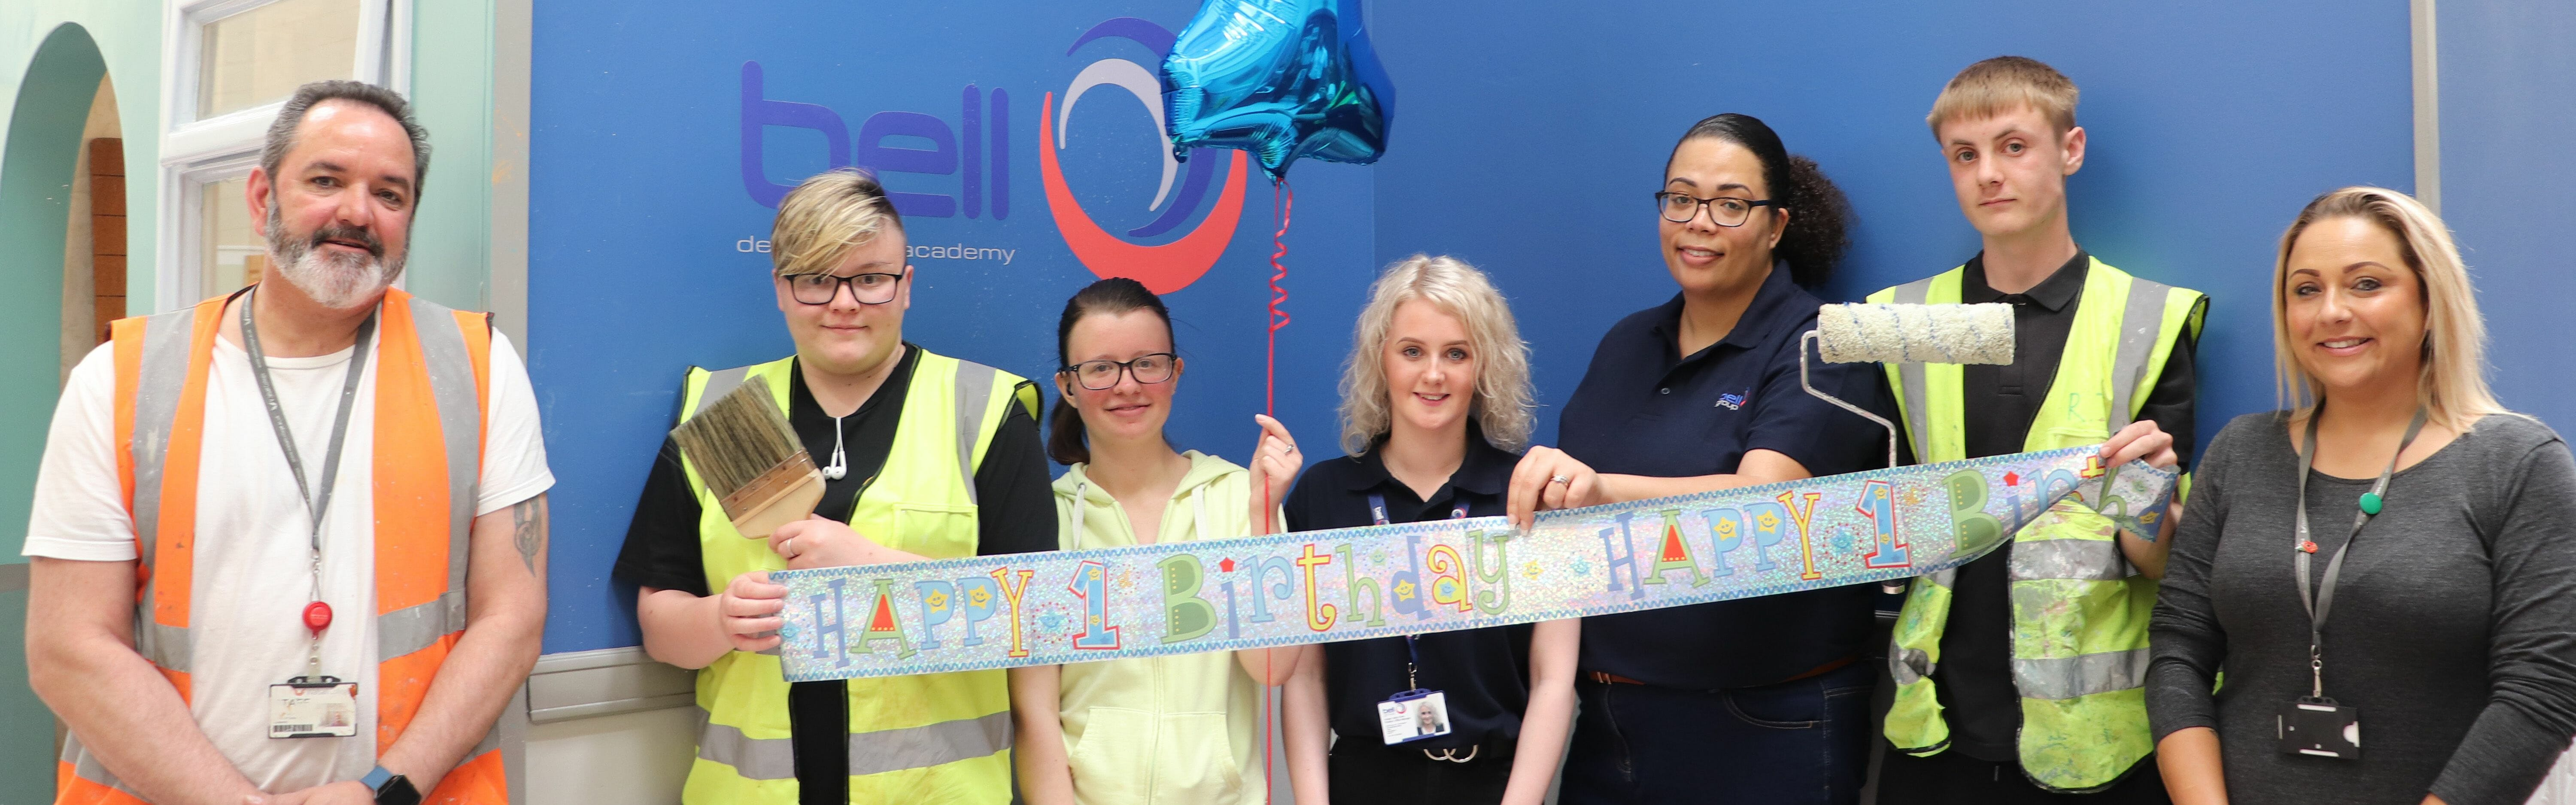 First birthday celebrations for Bell Decorating Academy Headline Picture